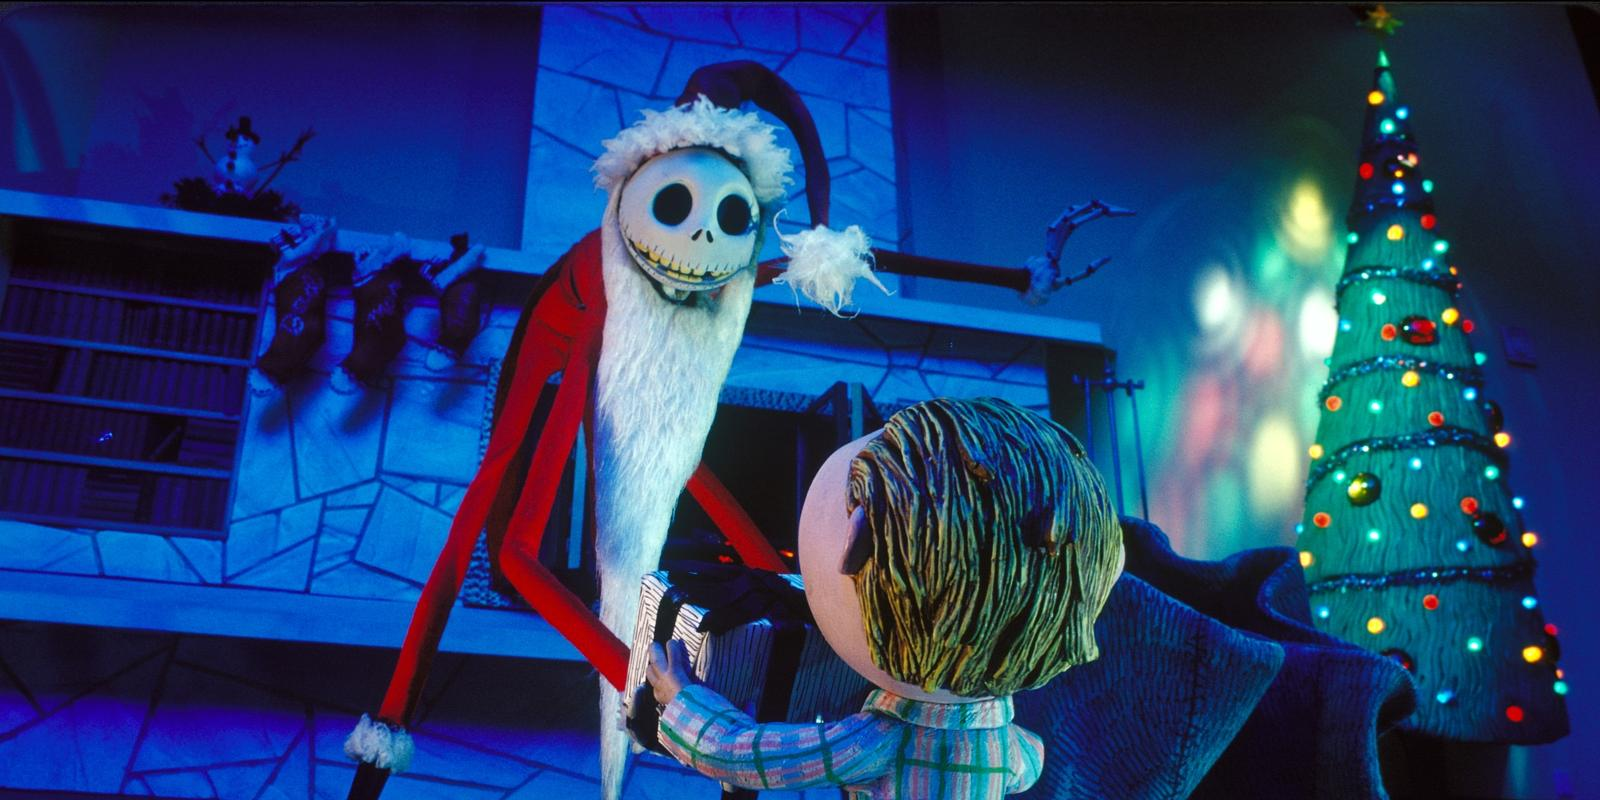 Is The Nightmare Before Christmas set at Christmas or Halloween ...